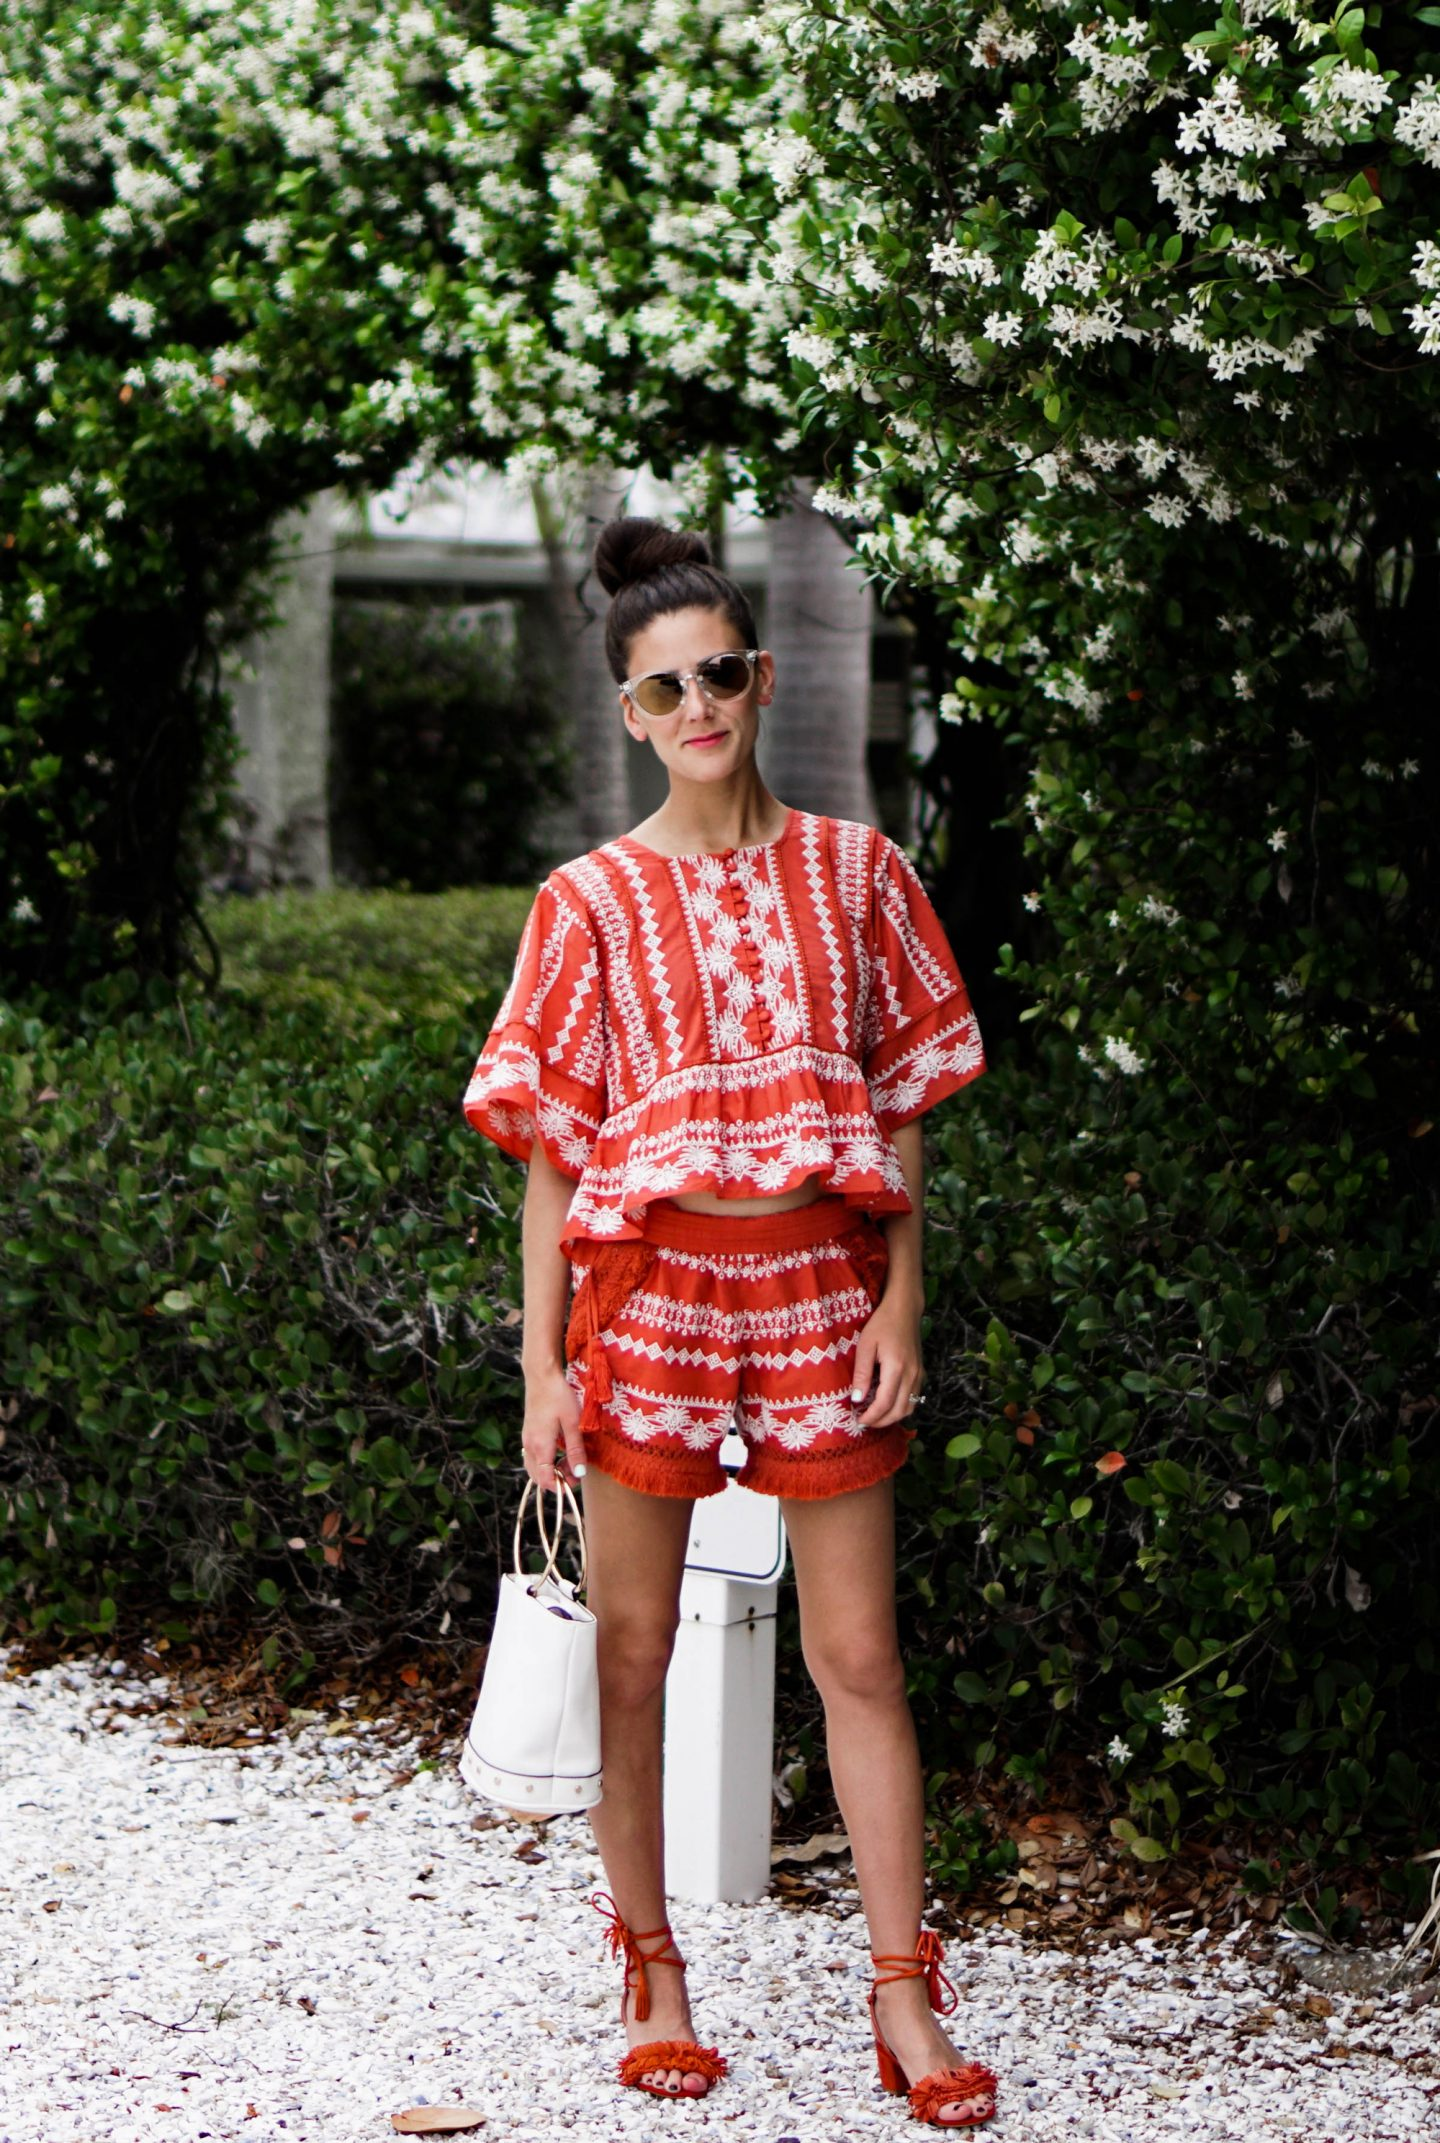 I'm exploring Anna Maria island in the prettiest matching separates (my idea of the perfect beach outfit) from Orchard Mile over on thedandyliarcom.